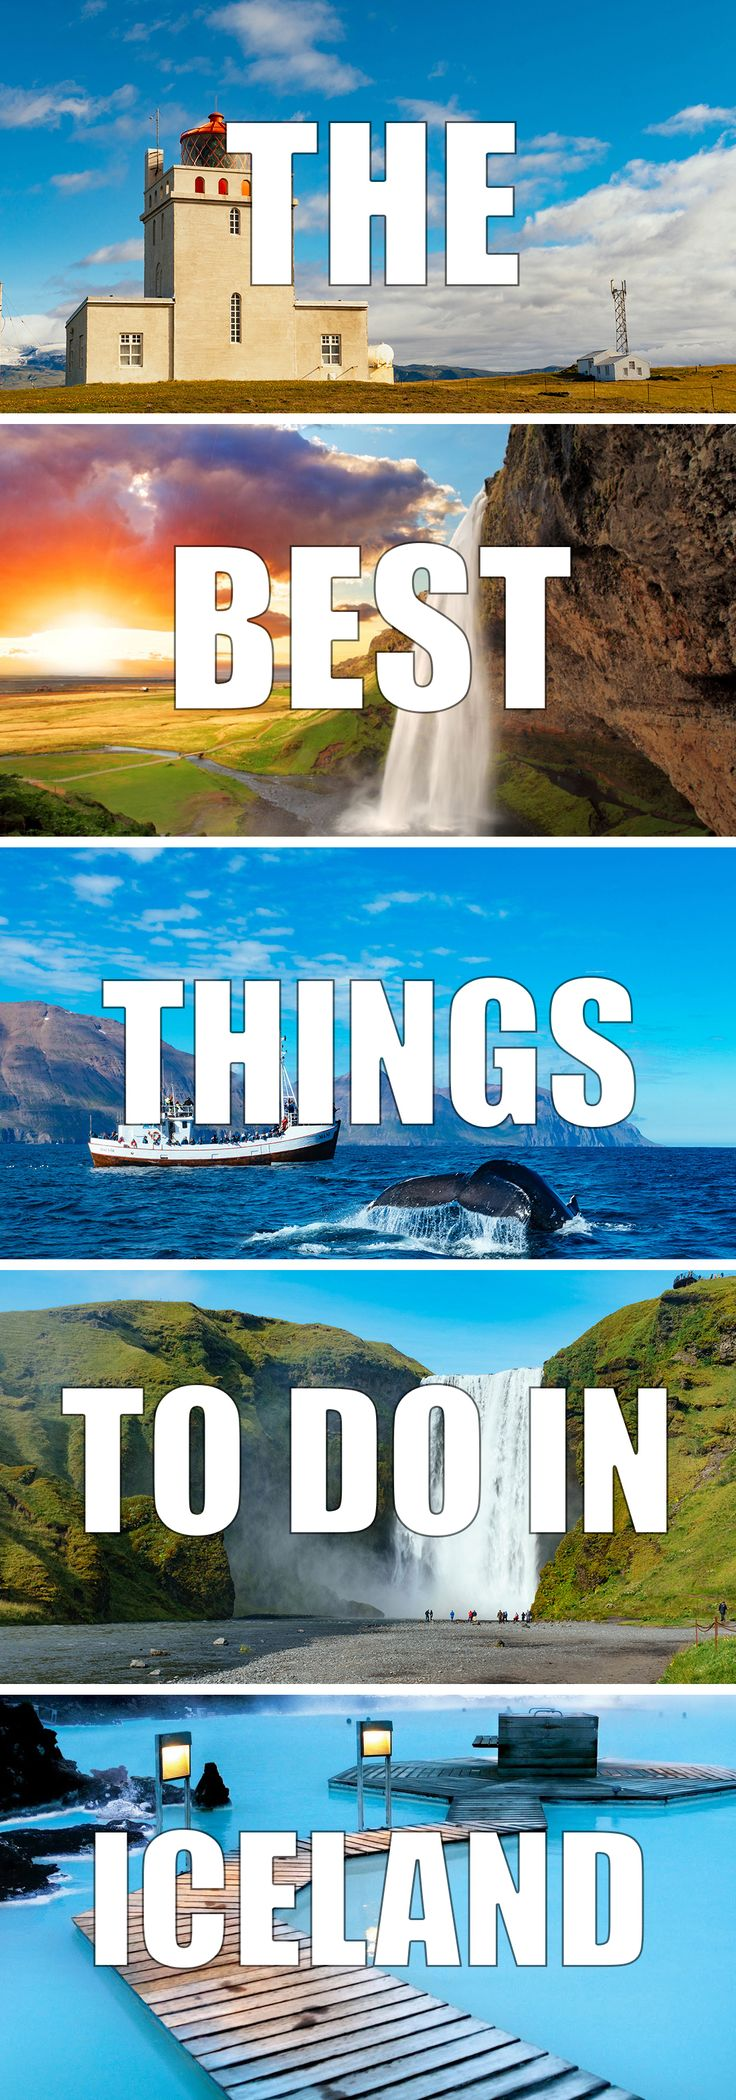 A list of the best things to do in Iceland. Learn all about the top tourist attractions and must-sees in Iceland. There are just so many beautiful and amazing natural highlights to see in Iceland. You certainly need to visit the blue lagoon, the waterfalls and see the Northern Lights. Click for more information on Iceland travel.